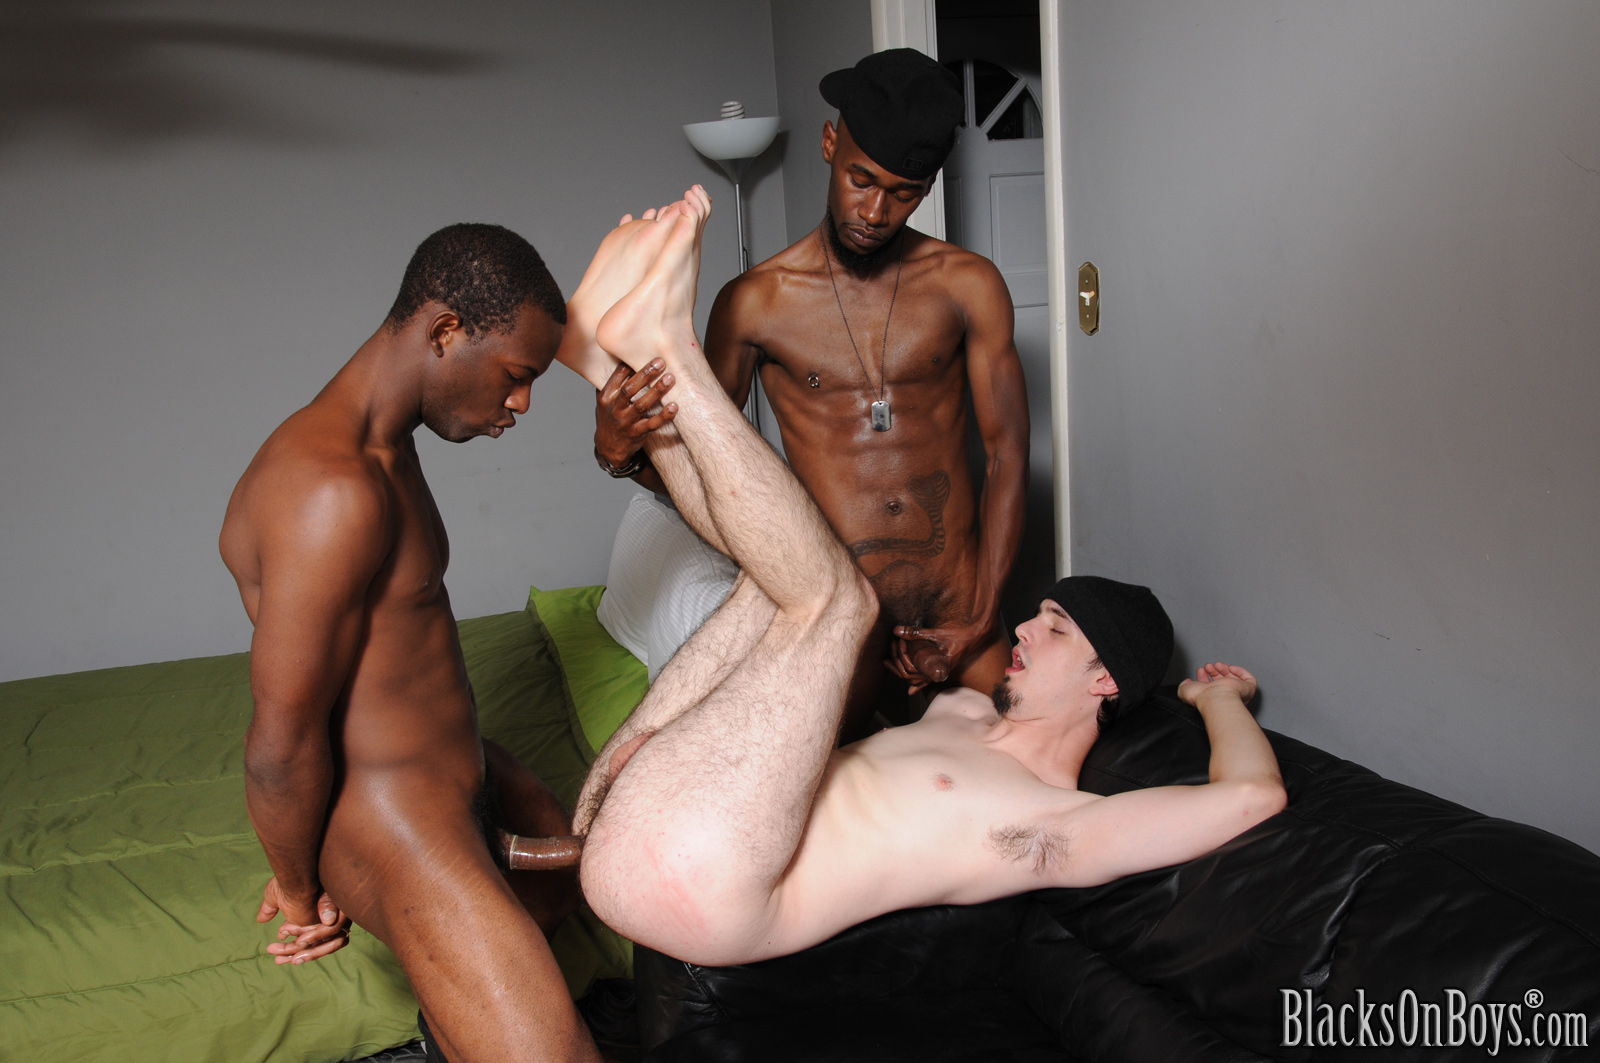 married men bareback gay anal fucking